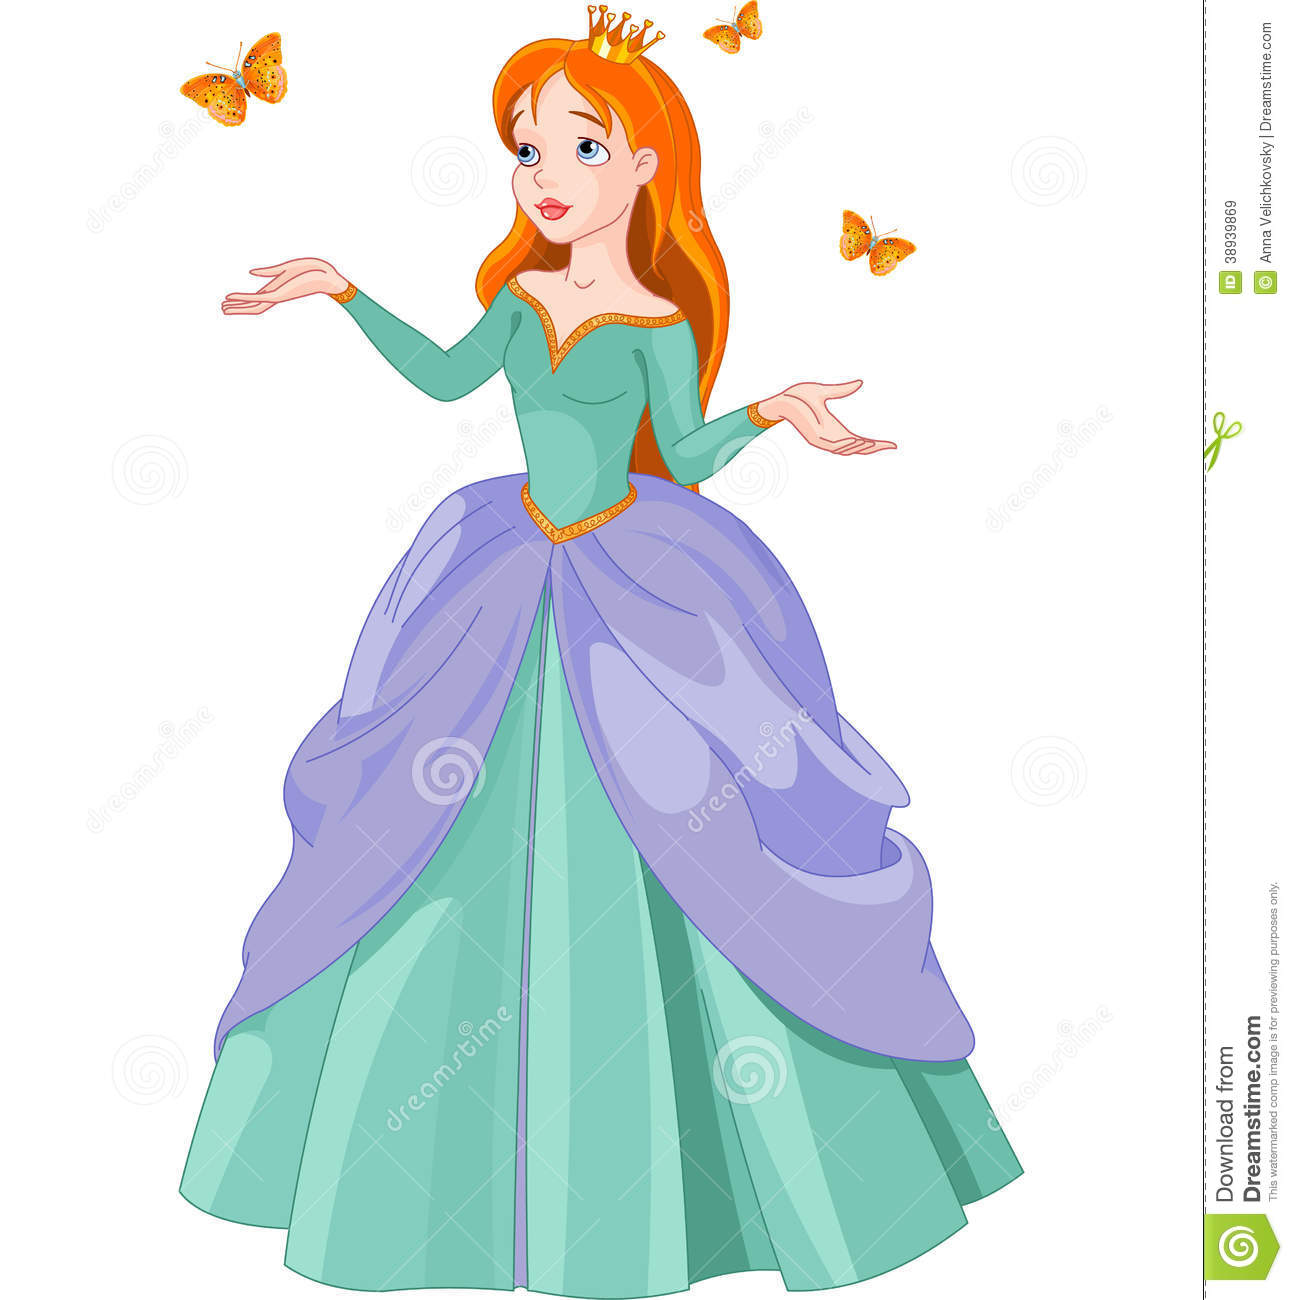 And butterflies stock vector. Butterfly clipart princess banner free